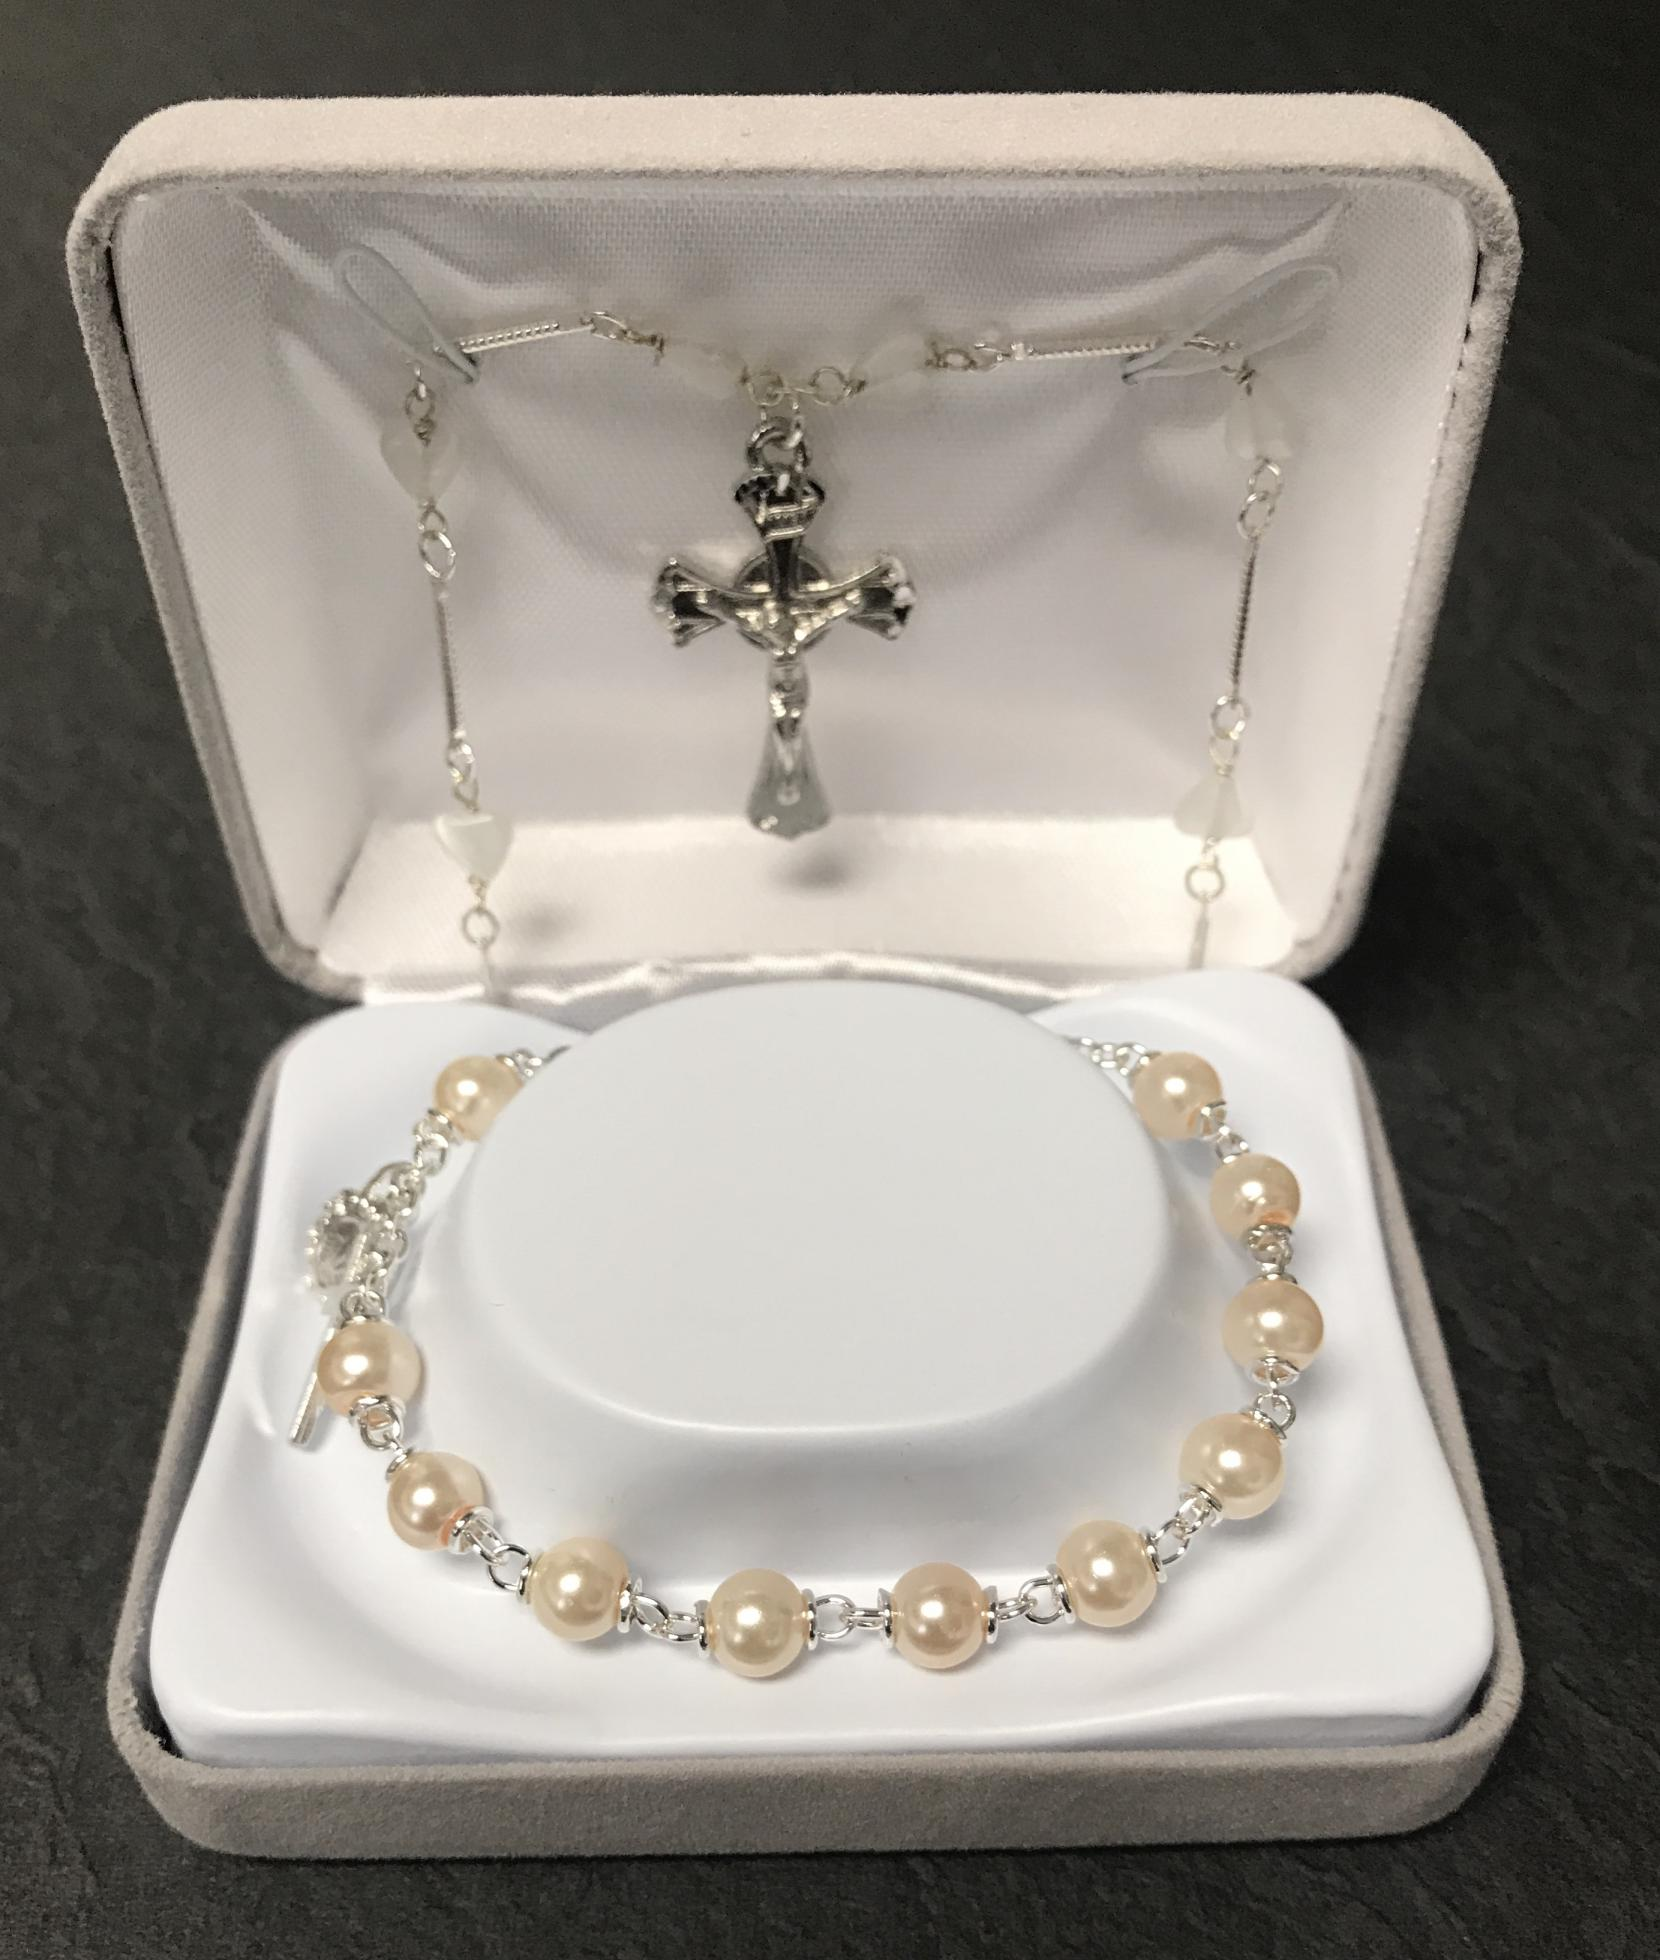 6mm PEARL FC BRACELET WITH NECKLACE GIFT BOXED